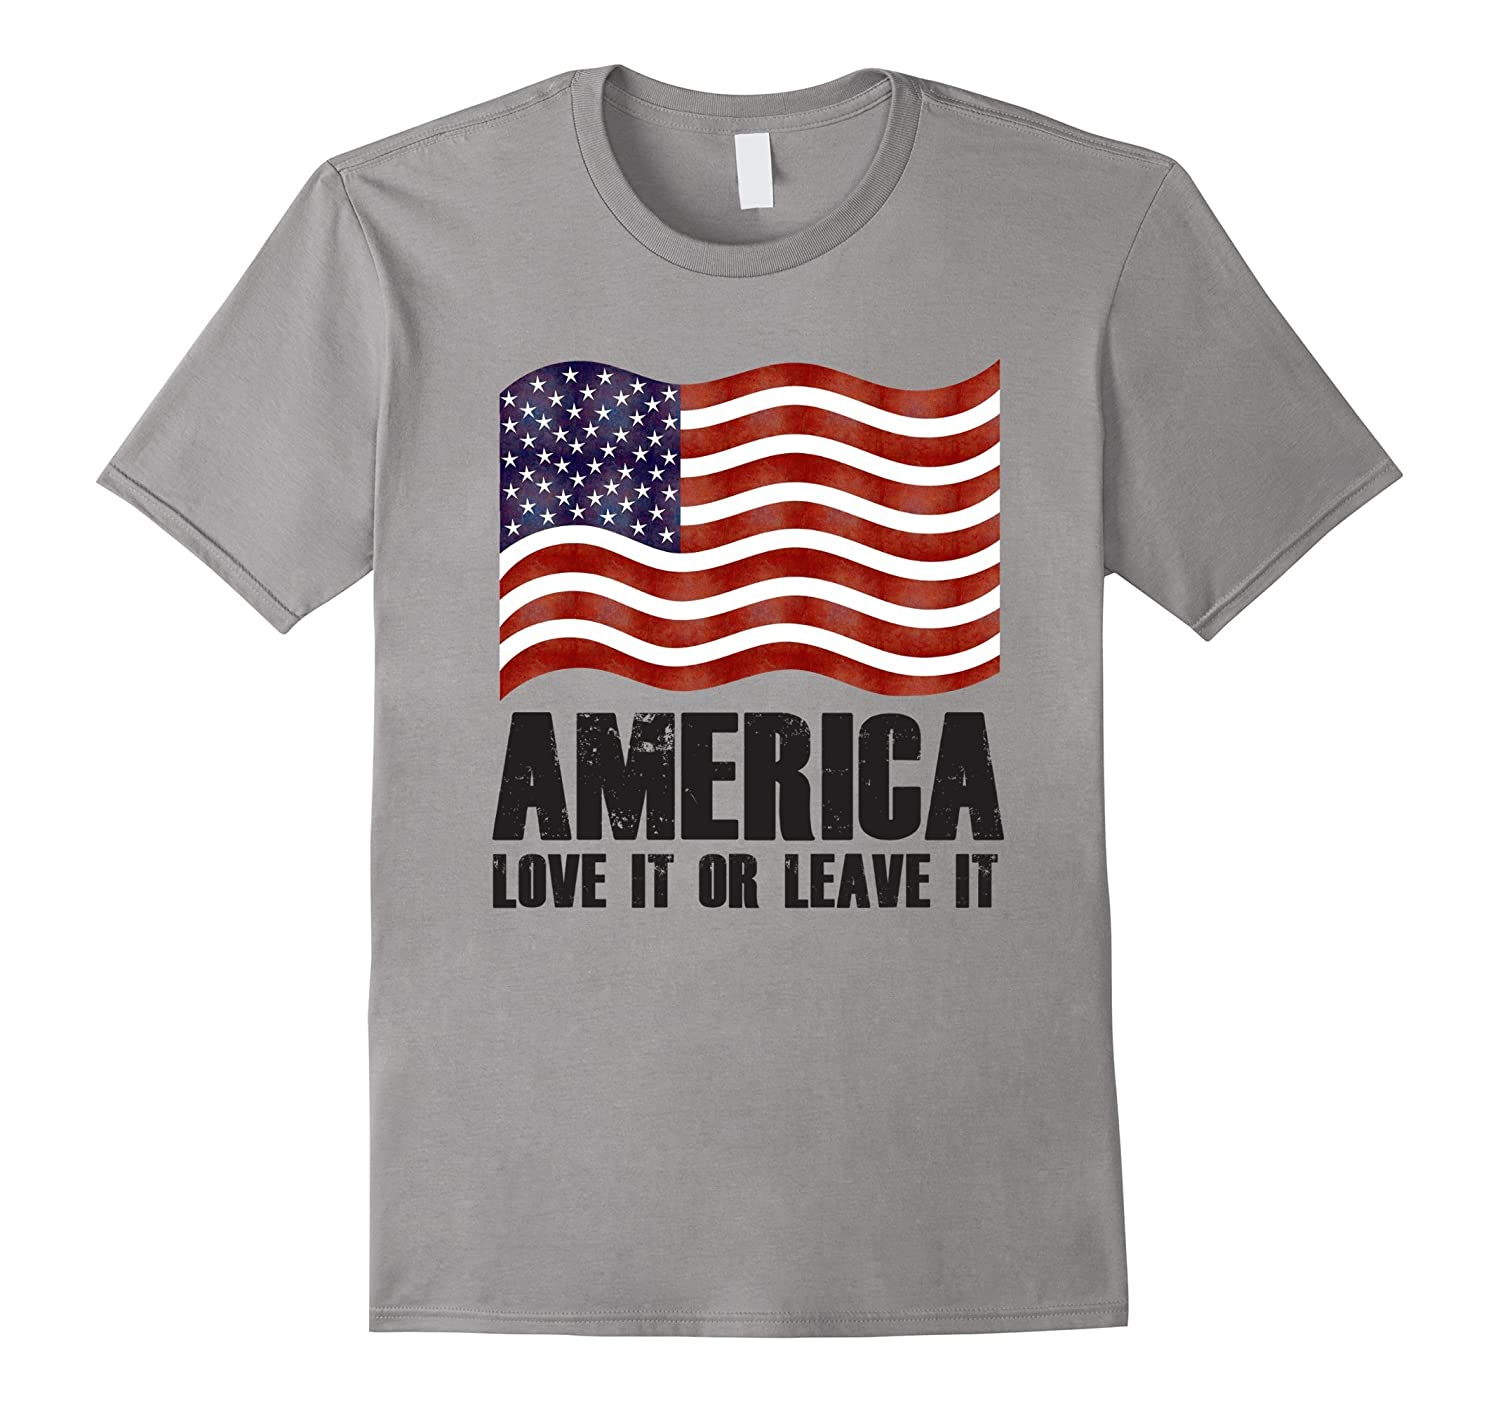 America Love It or Leave It Patriotic T-Shirt-PL